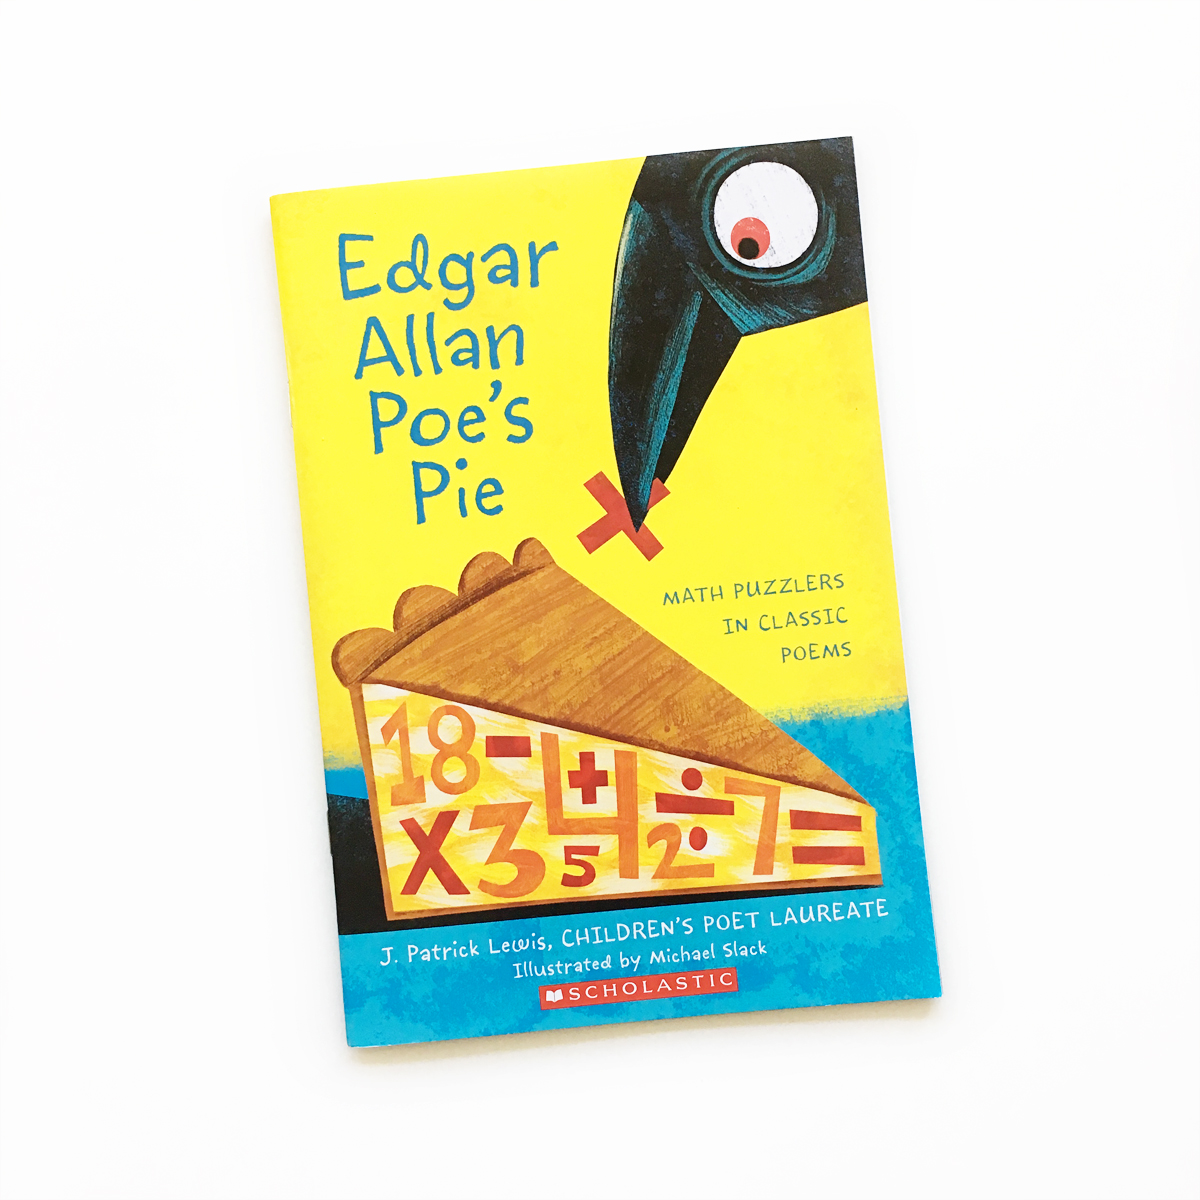 Edgar Allan Poe's Pie: Math Puzzlers in Classic Poems | Little Lit Book Series